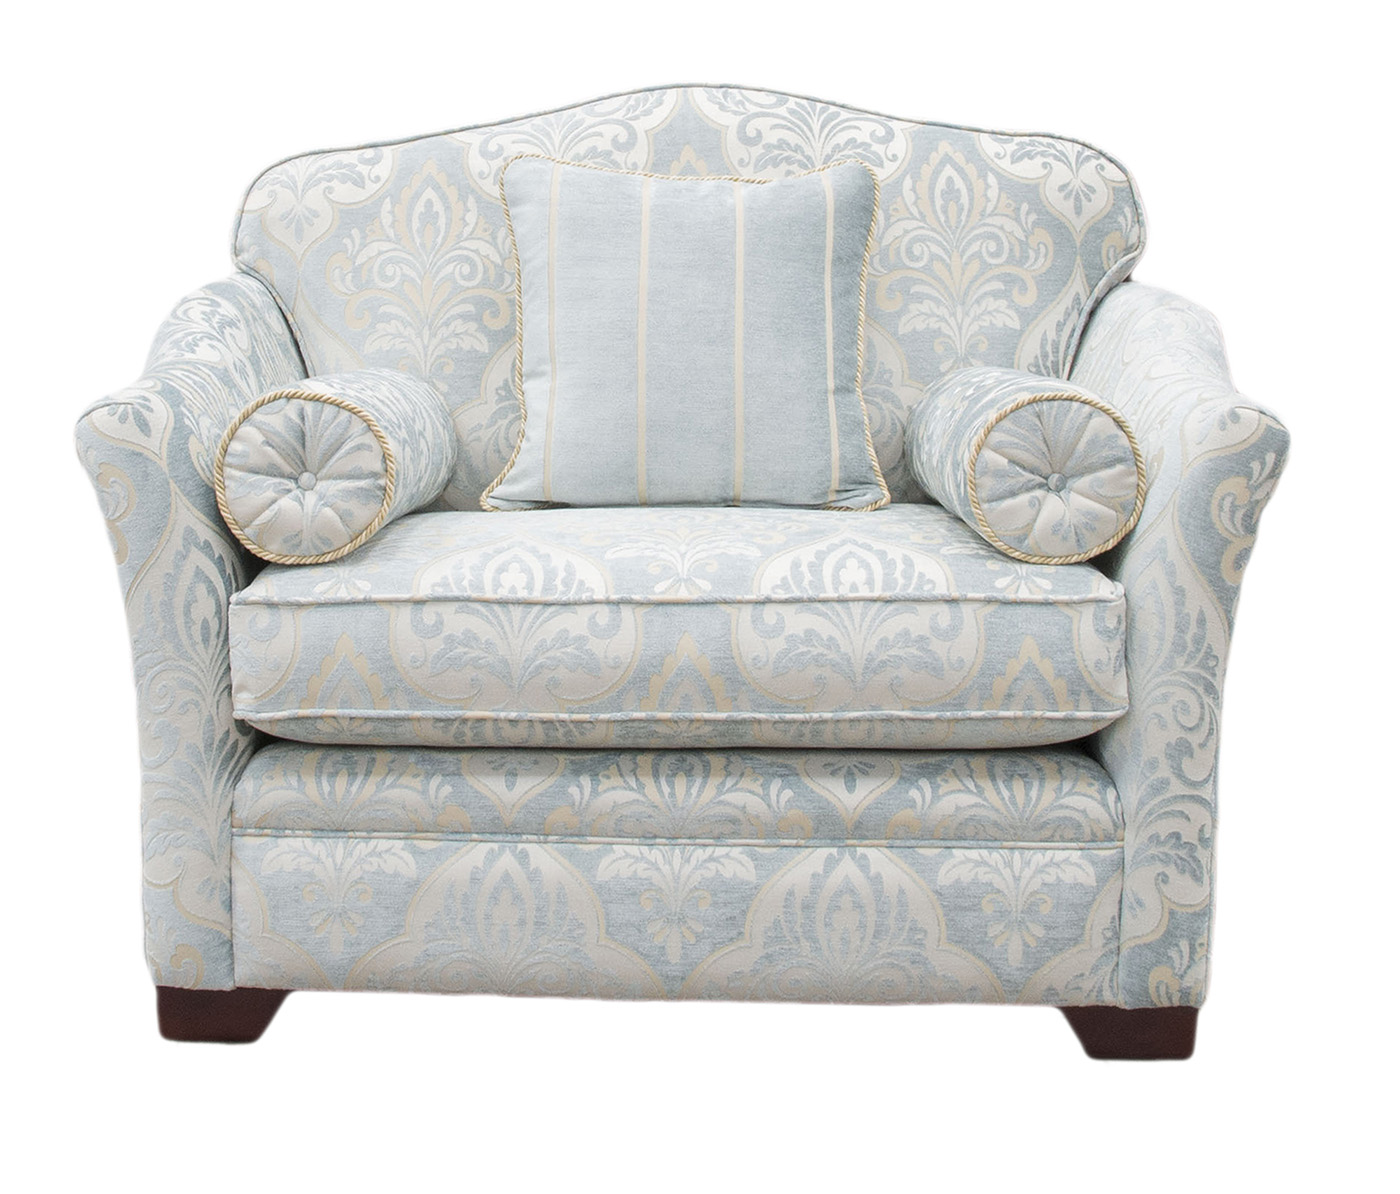 Othello Sofa Bed 3ft in Tolstoy Pattern Platinum Collection Fabric